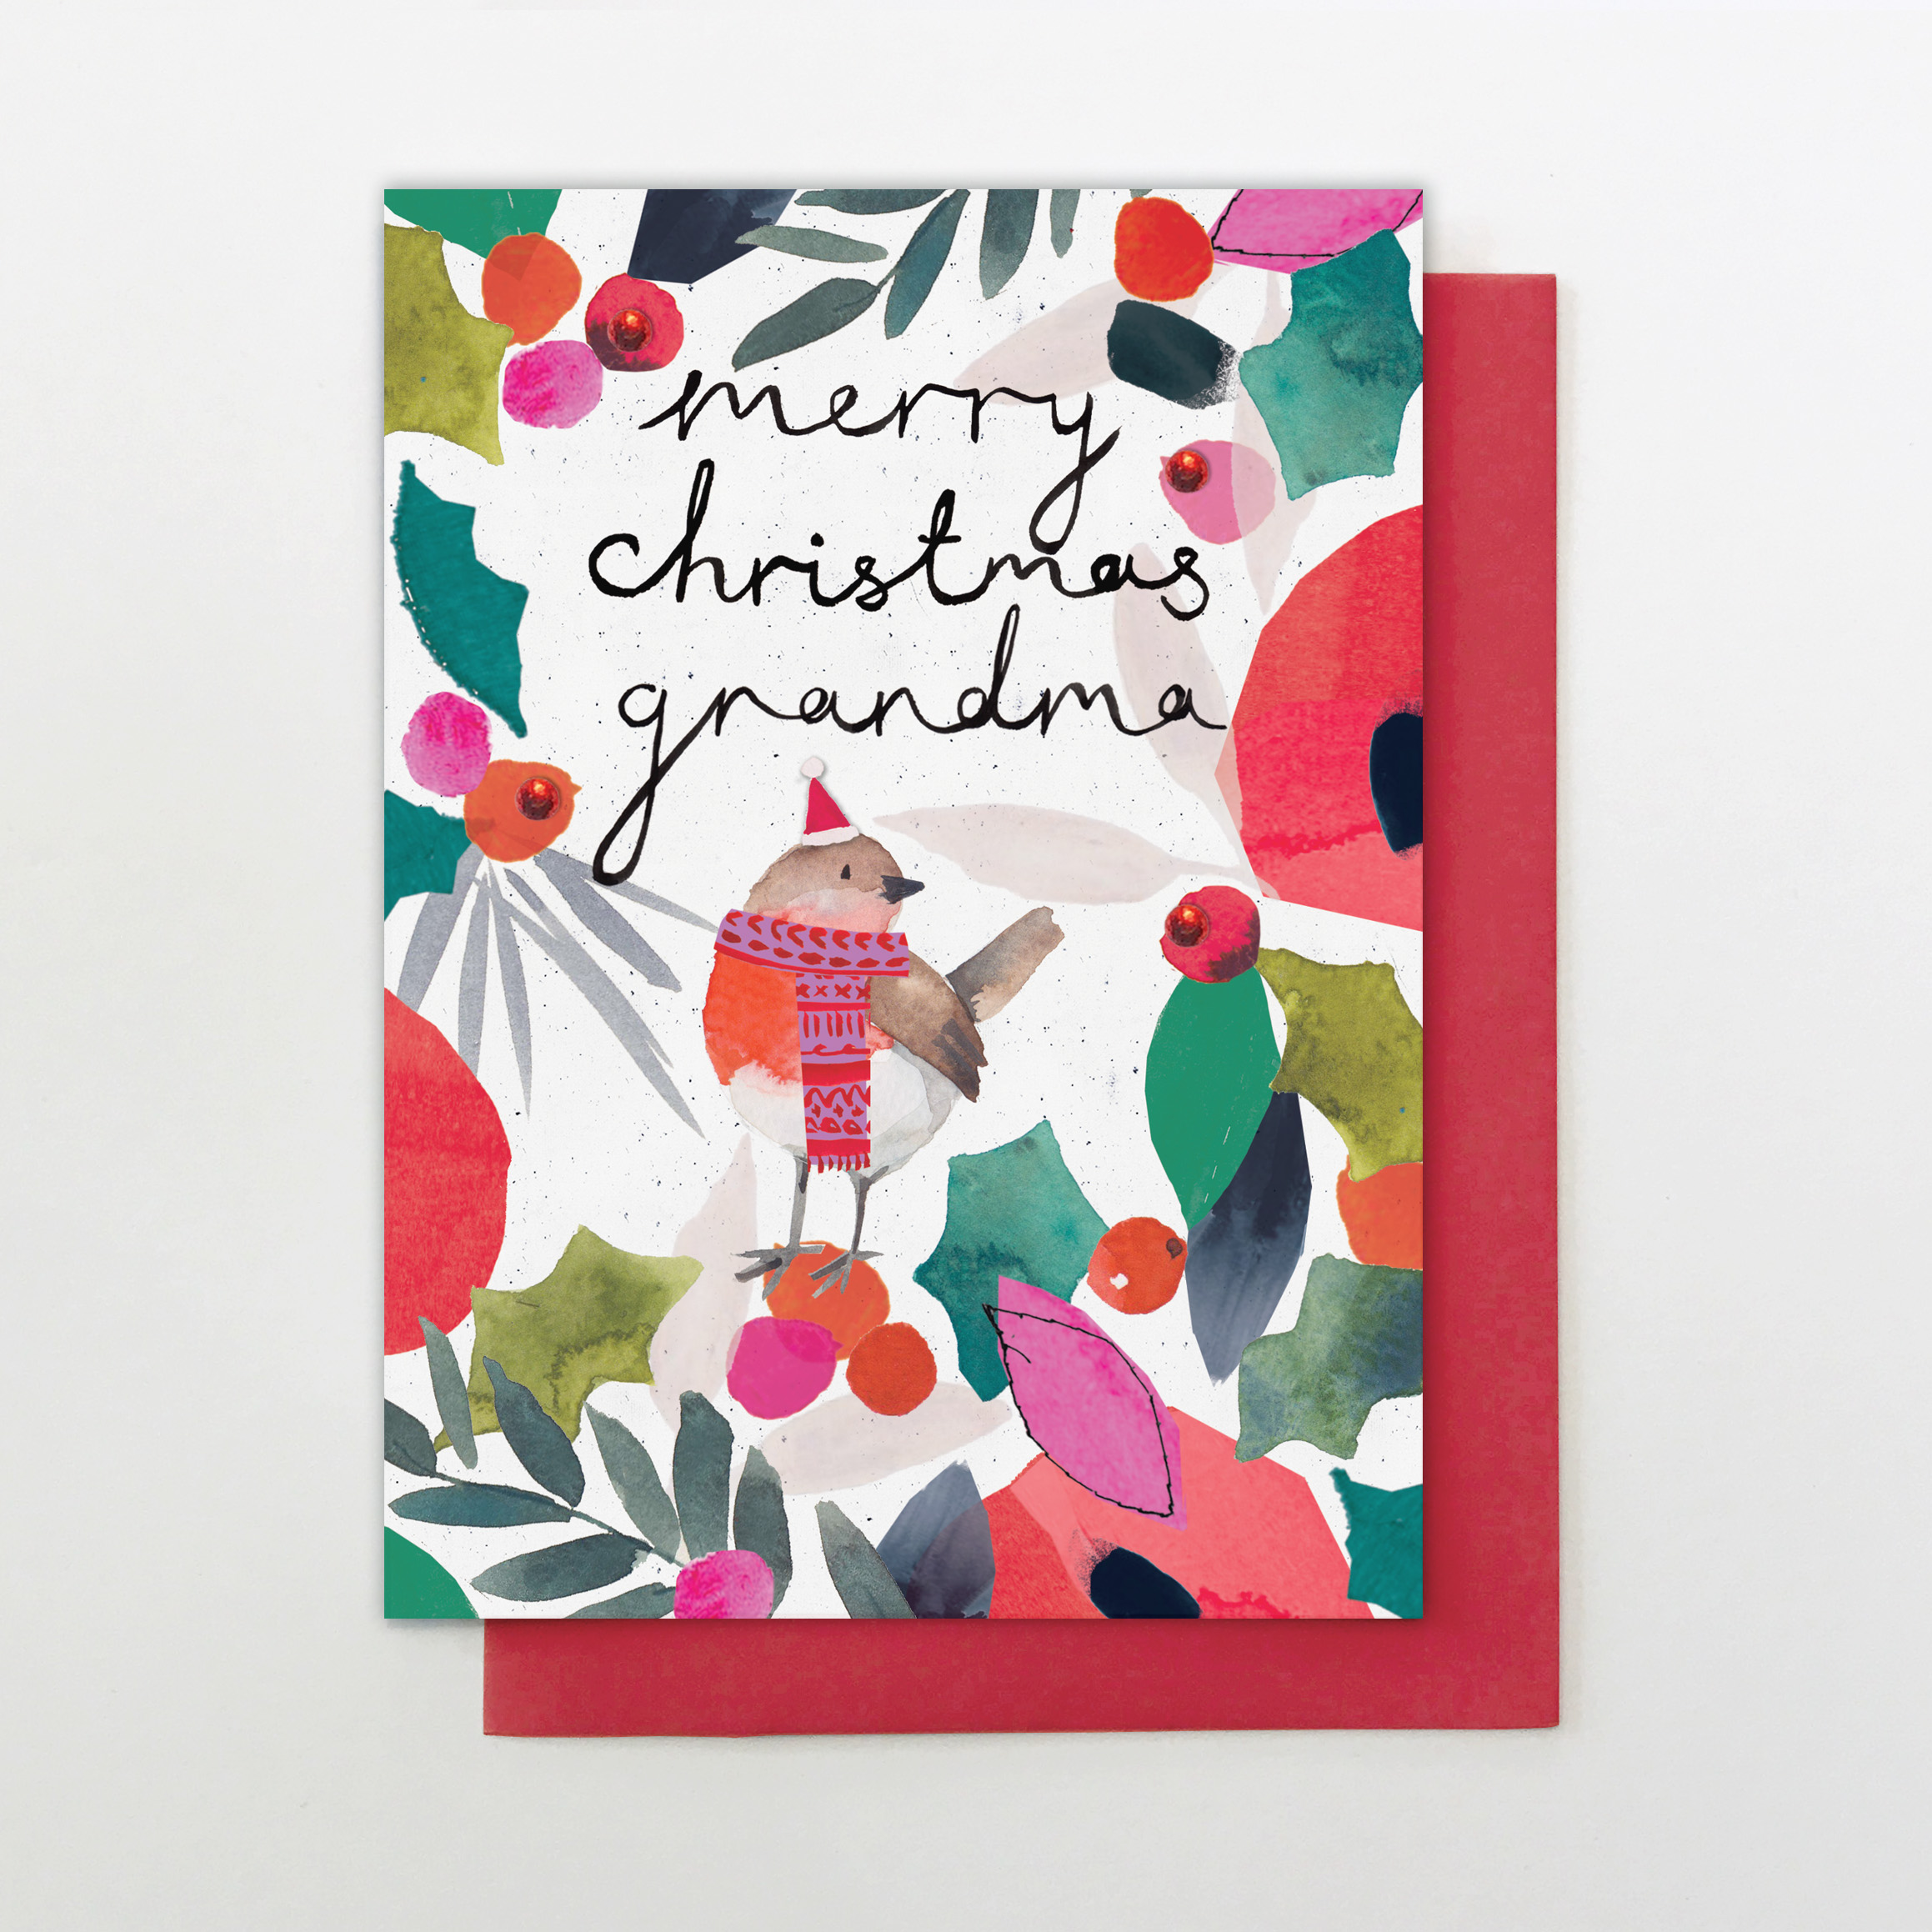 buy half price stop the clock design cards online at karenza paperie promo reduced offer cards birthday friend relations age christmas cards 1/2 price packs christmas thank you cards relations family friends